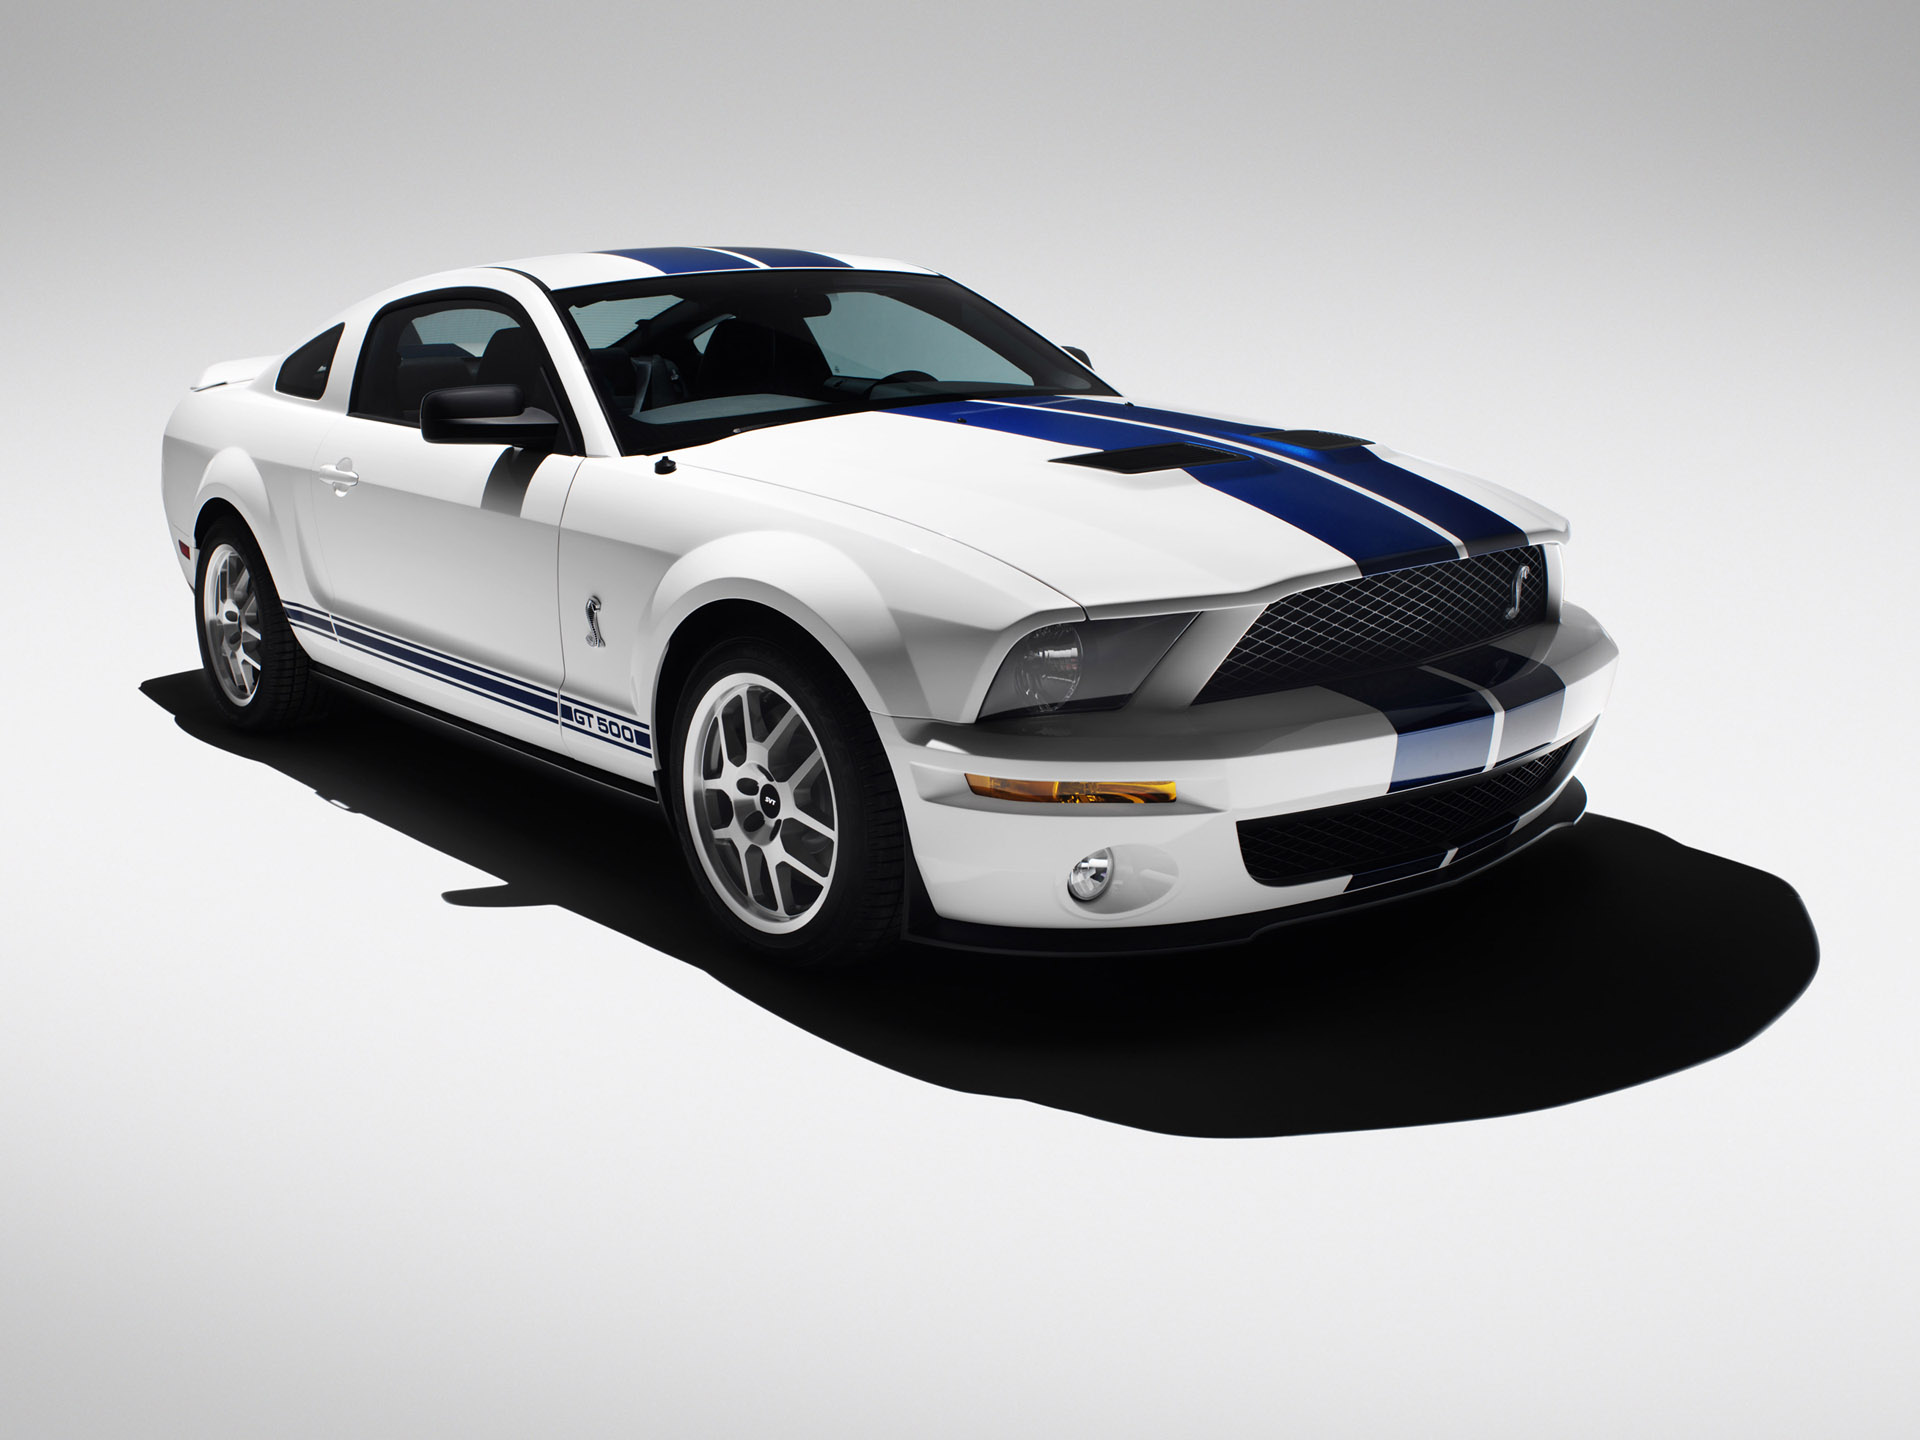 2007 Ford Shelby GT500 White 540.52 Kb